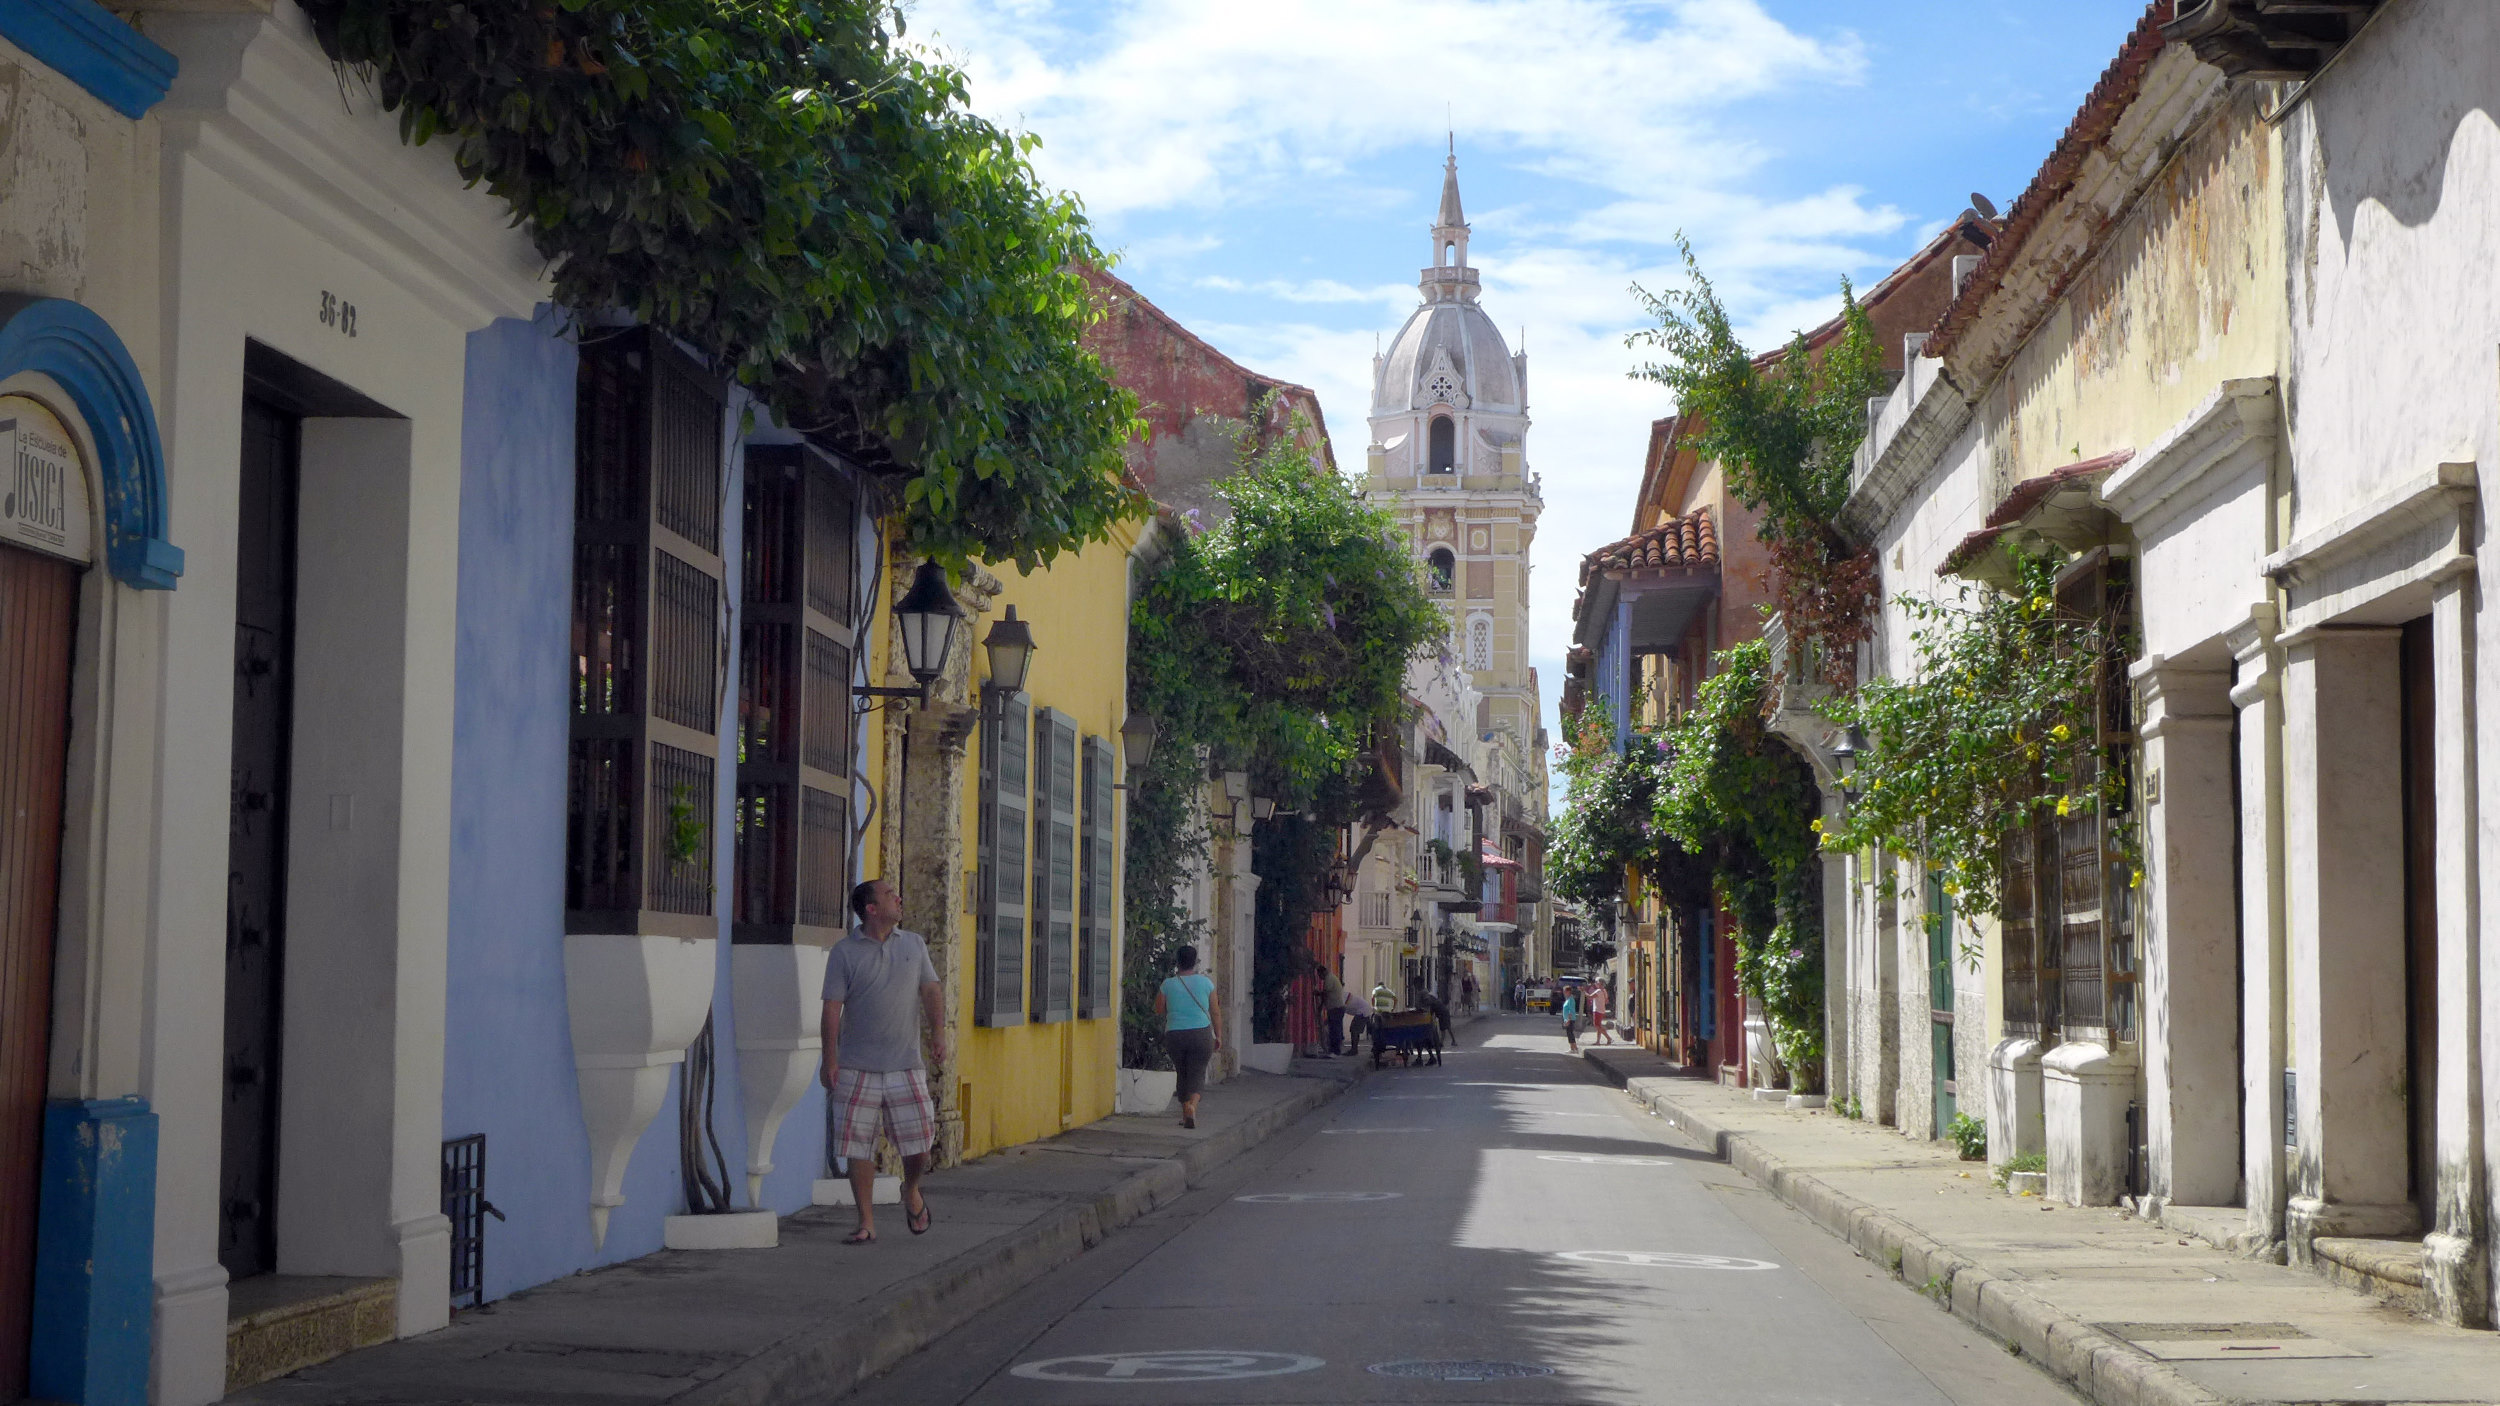 Colombia Cartagena Oude Stad Kathedraal Planten